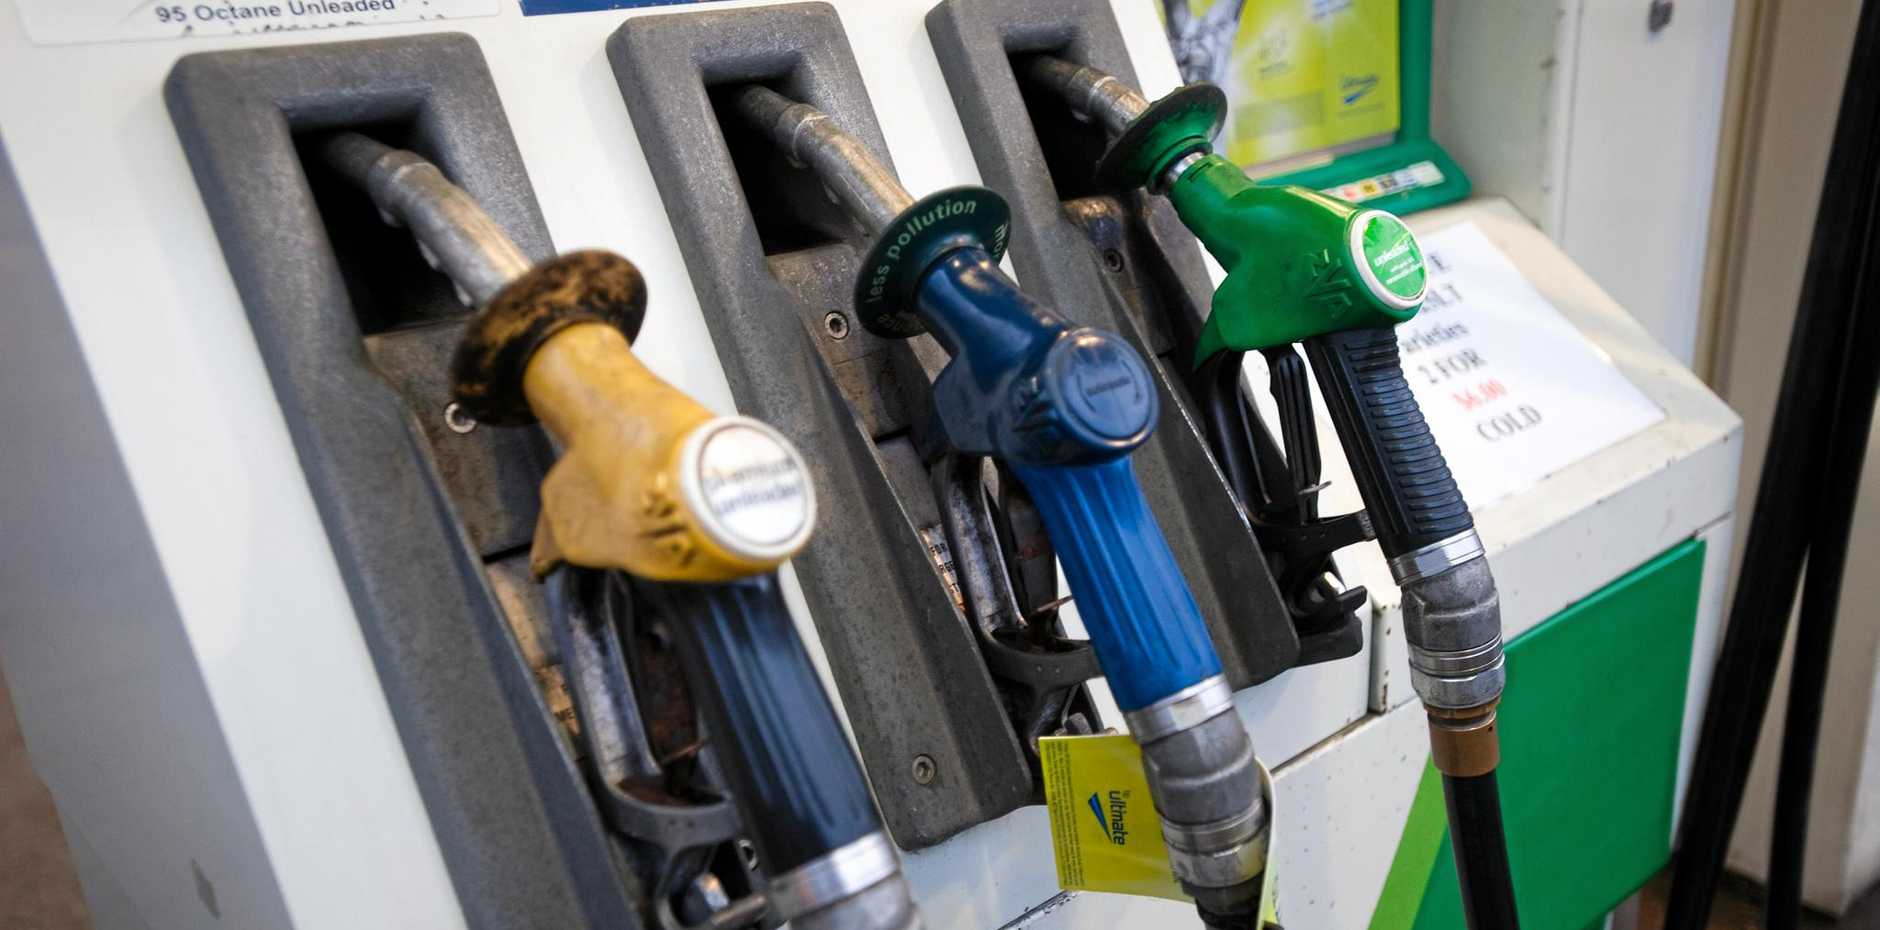 Here's the cheapest fuel on offer today across Coffs Harbour service stations.